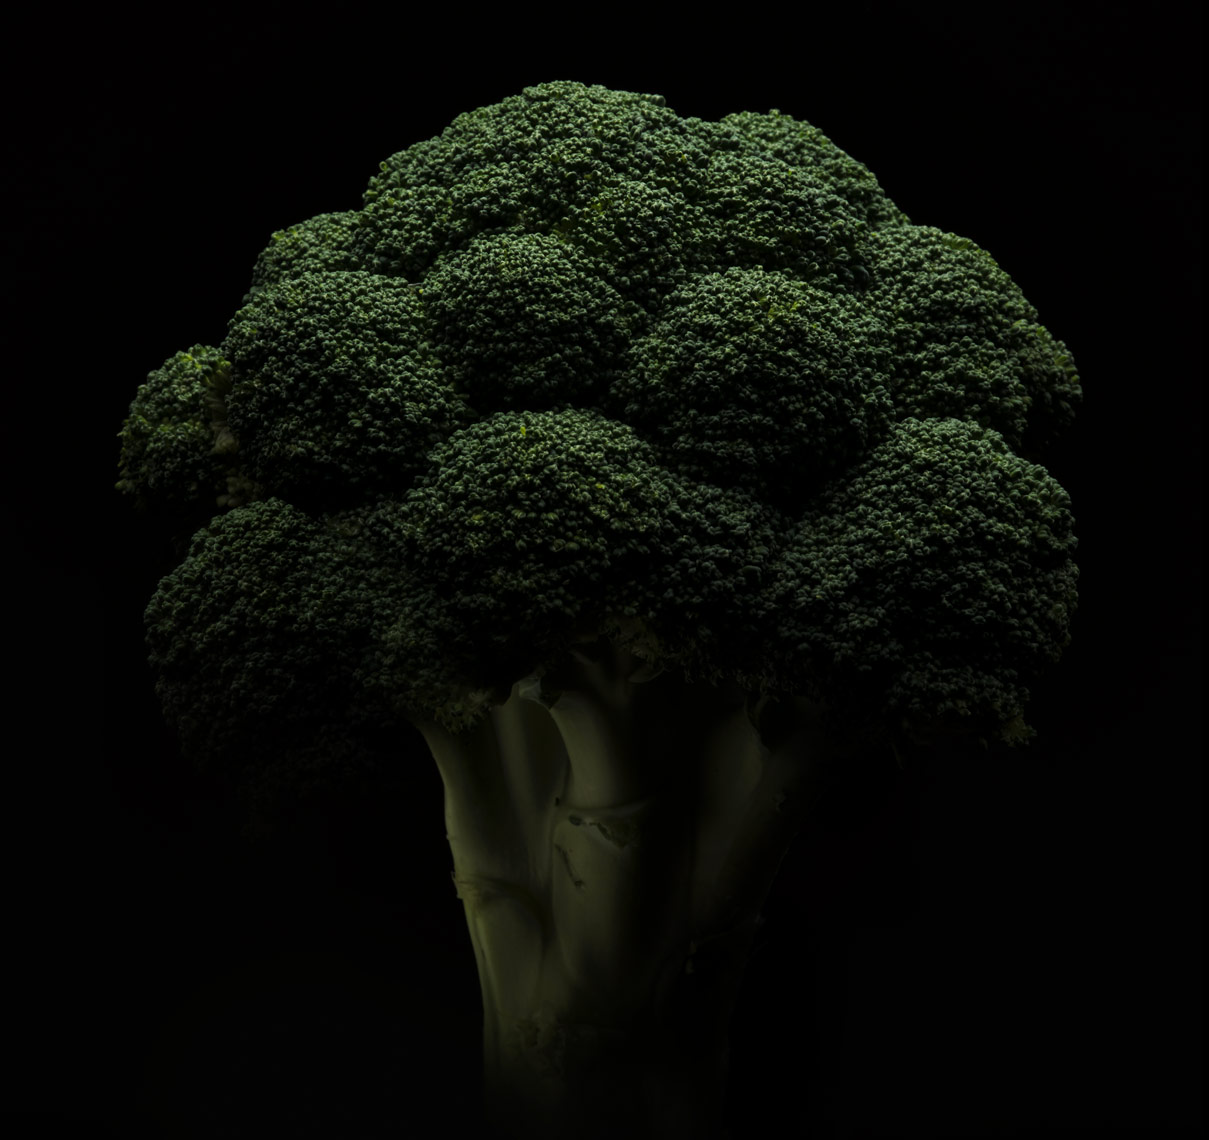 dramatic stalk of broccoli on a black background